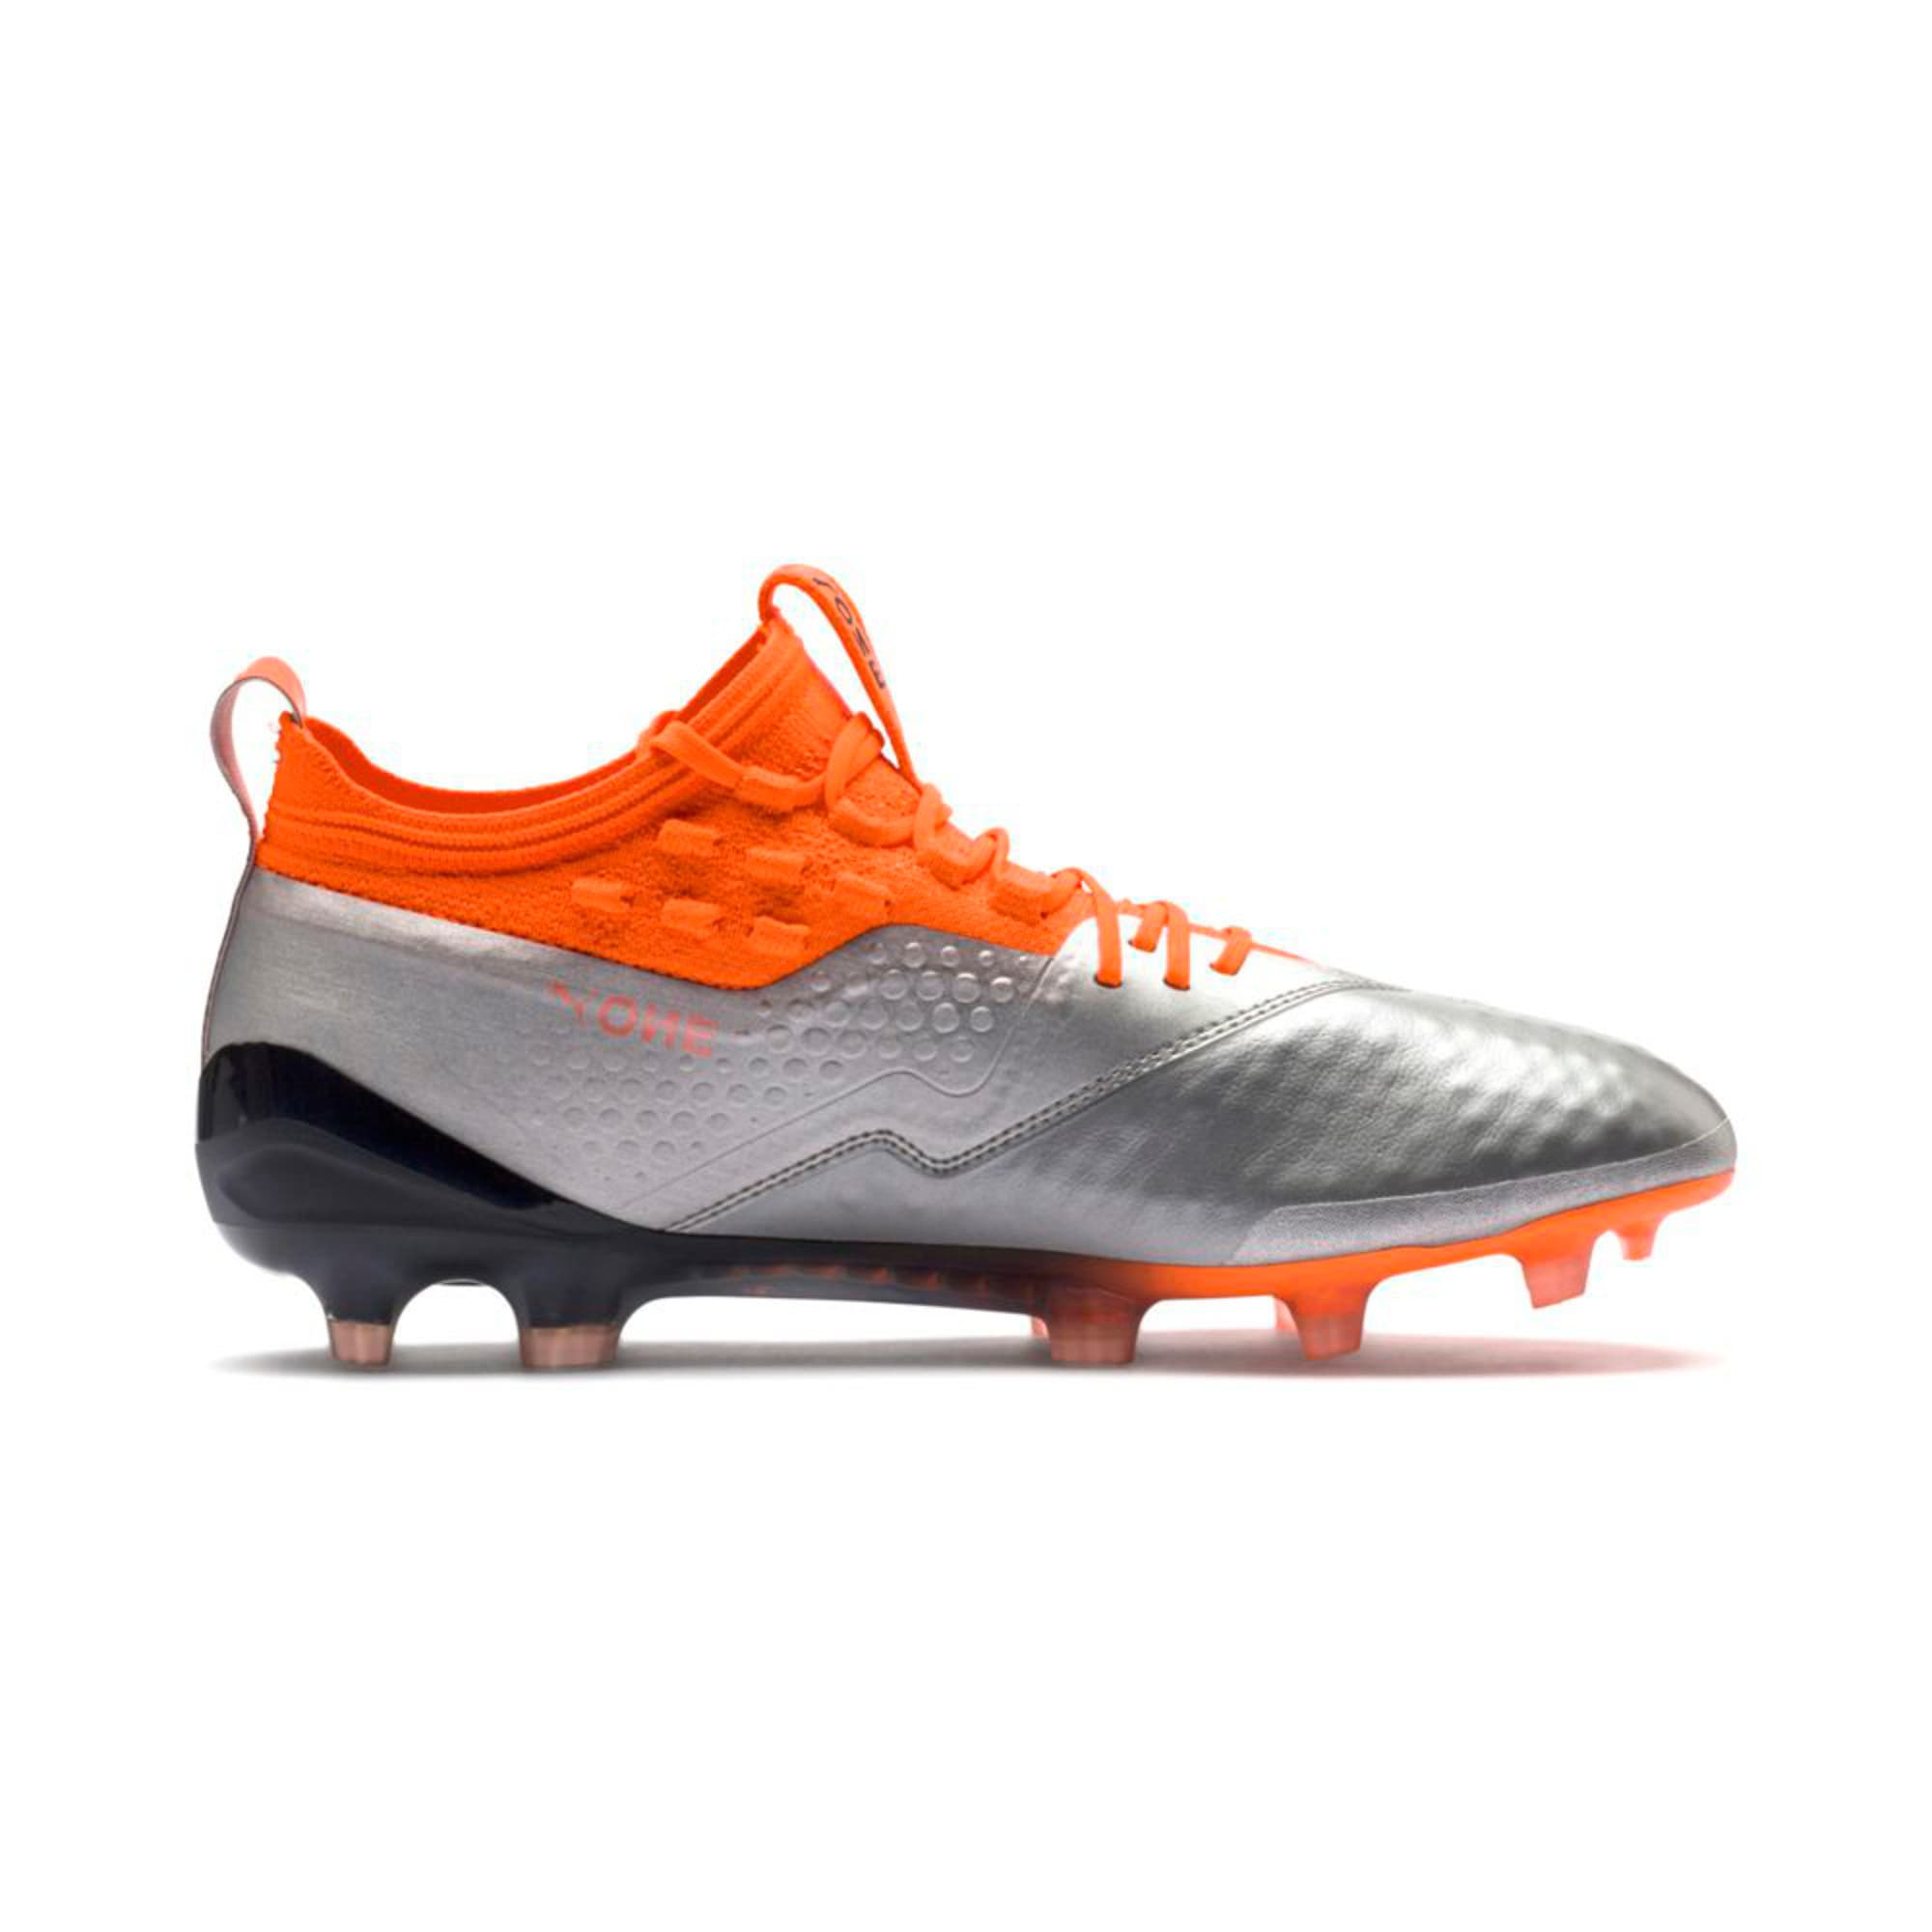 Thumbnail 6 of PUMA ONE 1 Leather FG/AG Men's Football Boots, Silver-Orange-Black, medium-IND